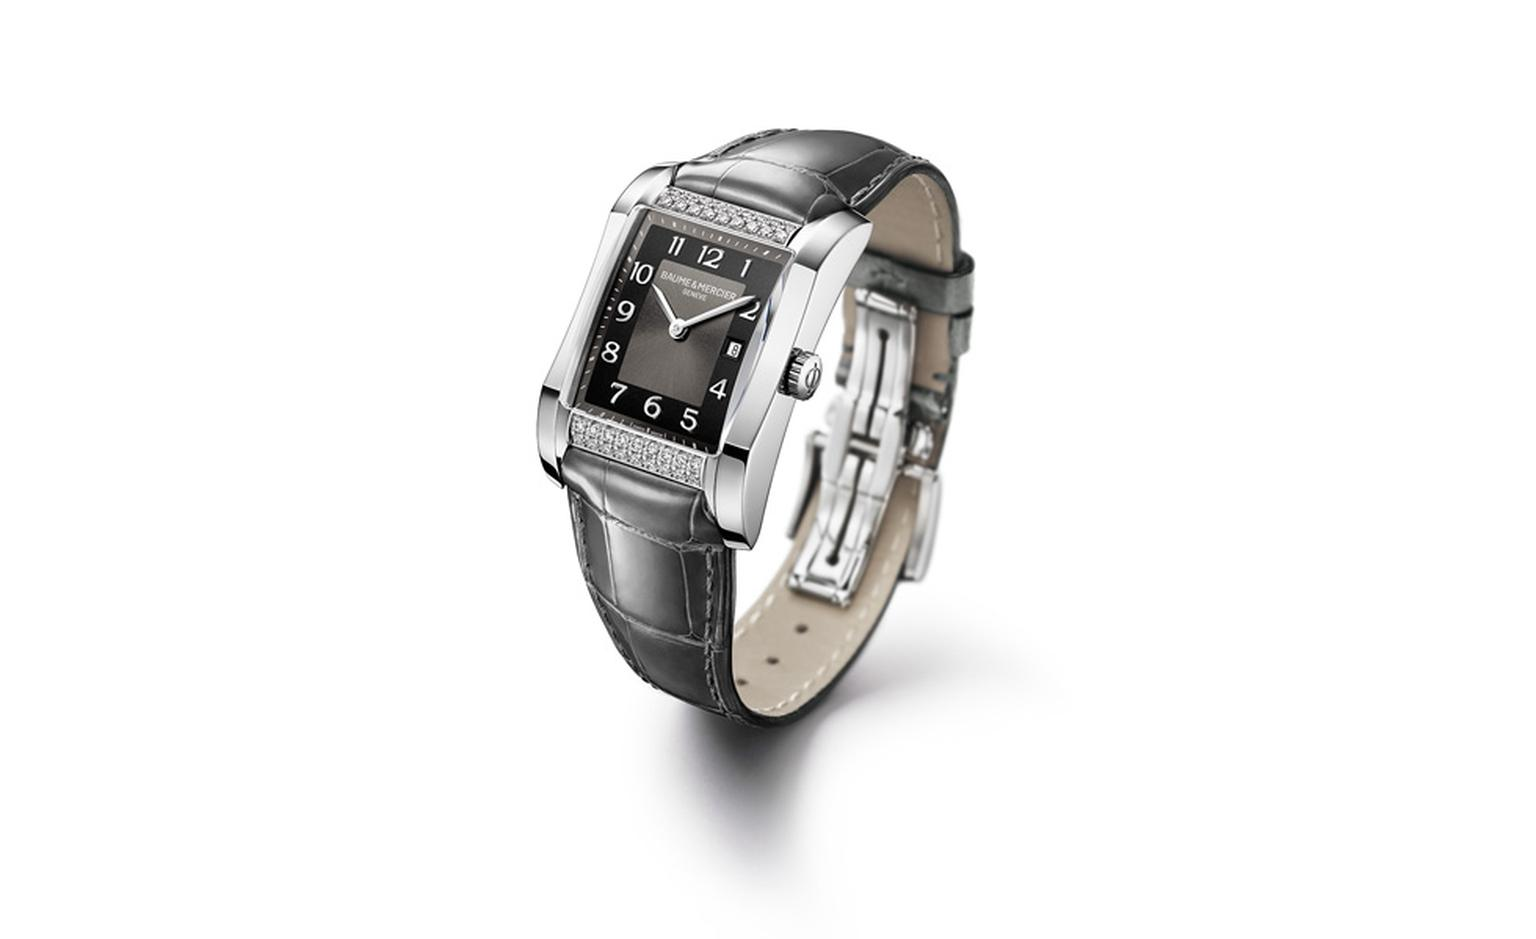 Baume et Mercier Hampton for women: stainless steel case with quartz movement on leather strap. £3,870.